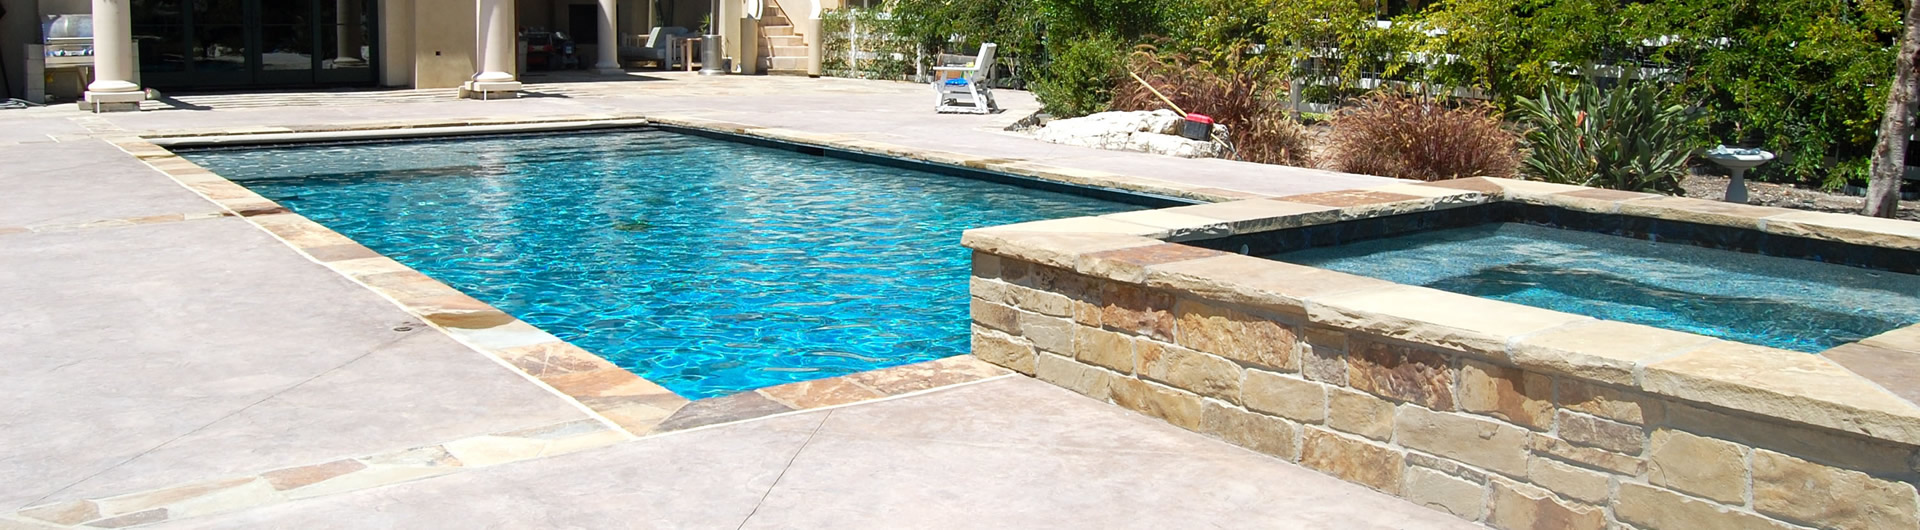 Pool and Masonry Specialists since 1970